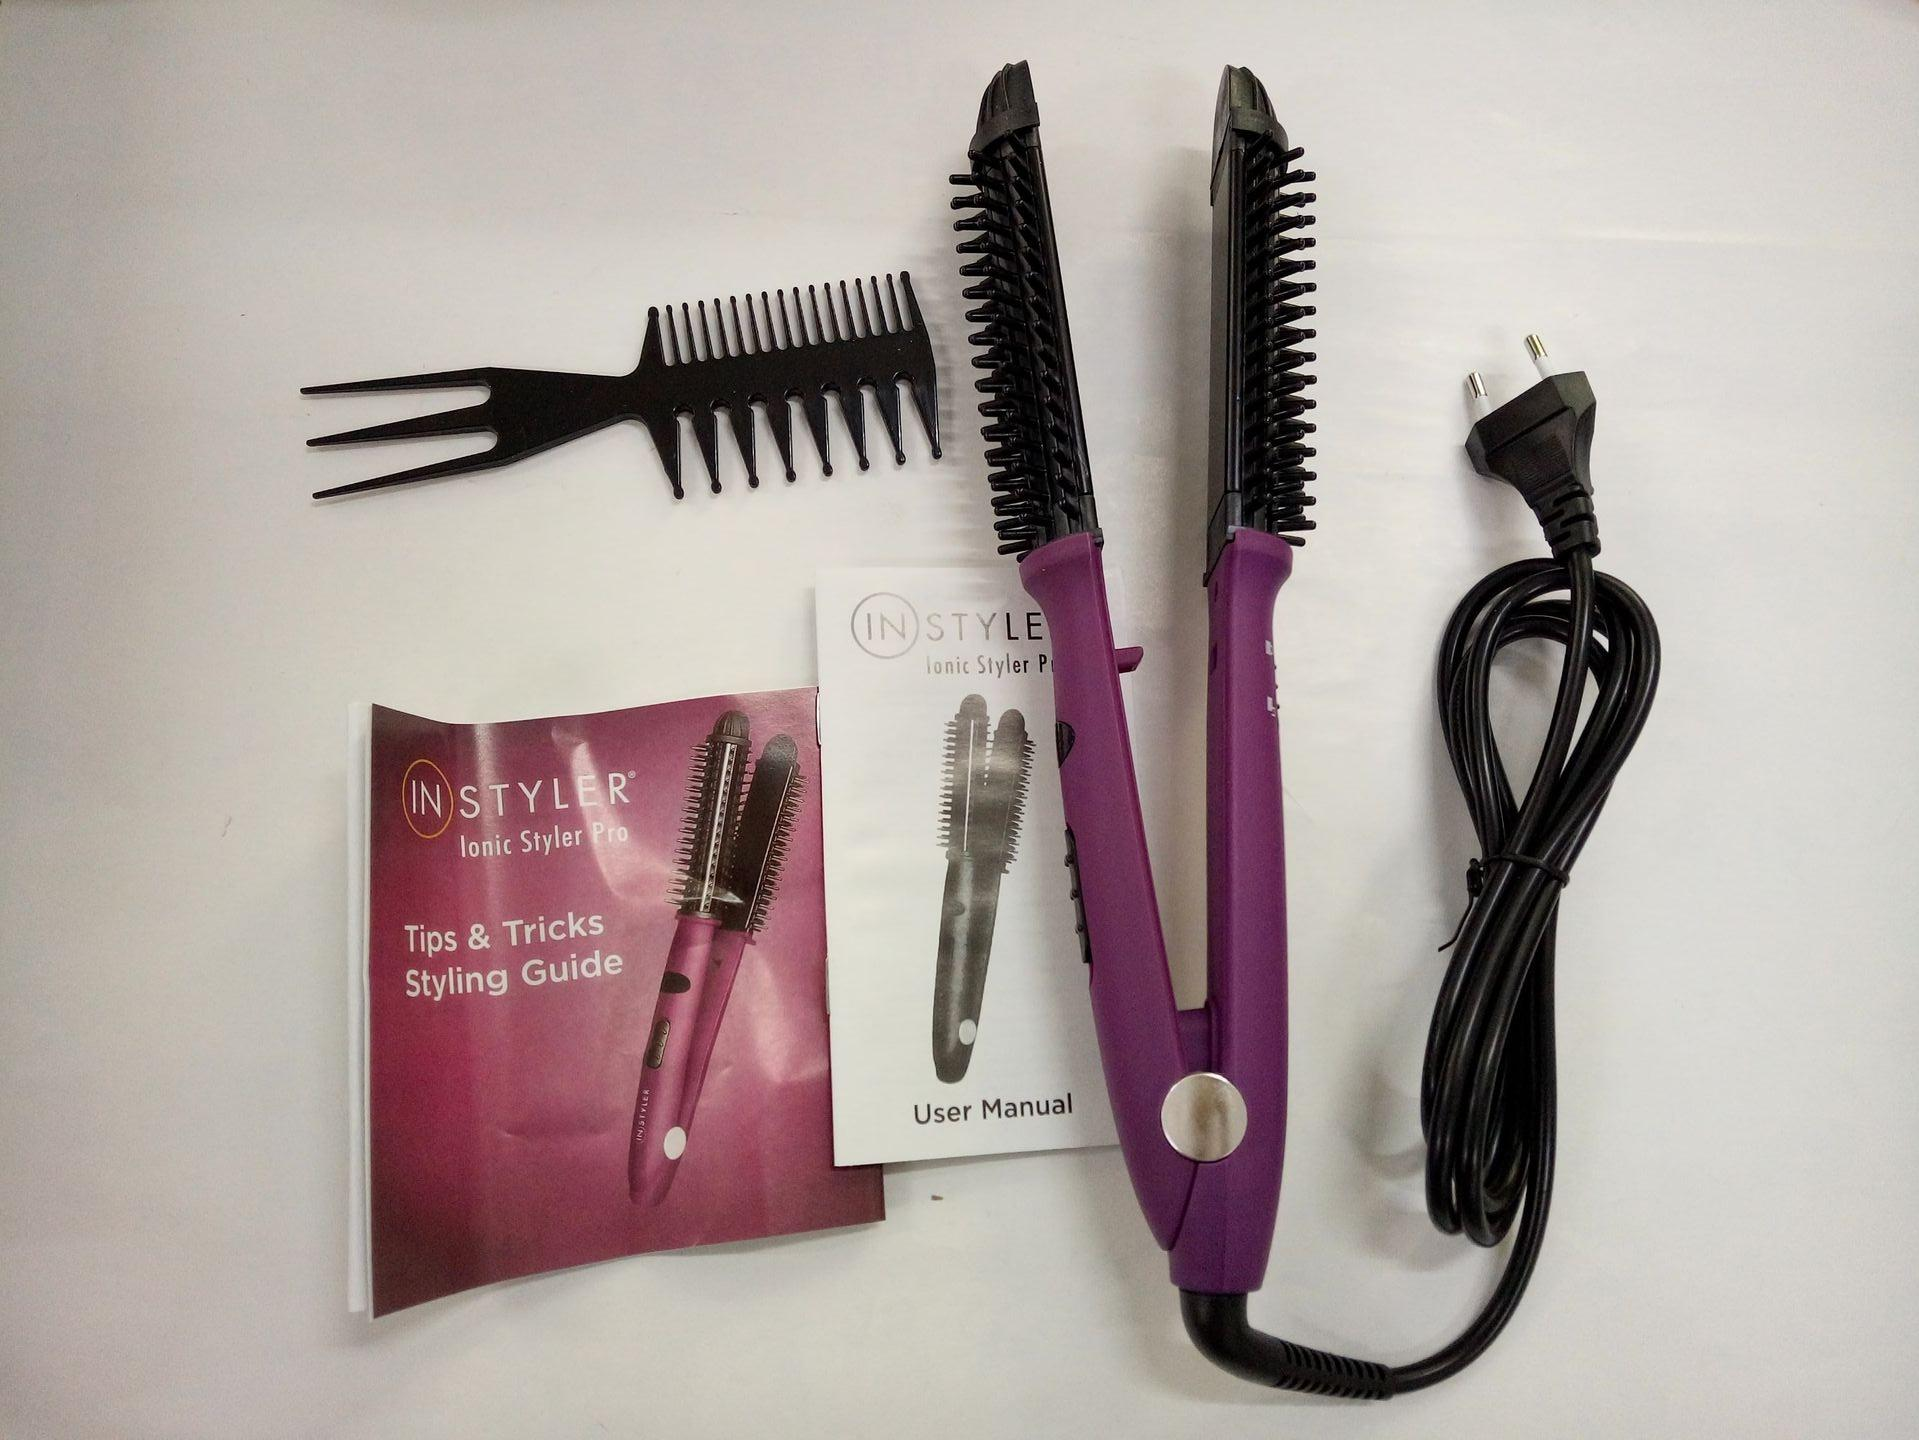 Instyler Inioc Styler Pro Ceramic Hot Brush and Flat iron